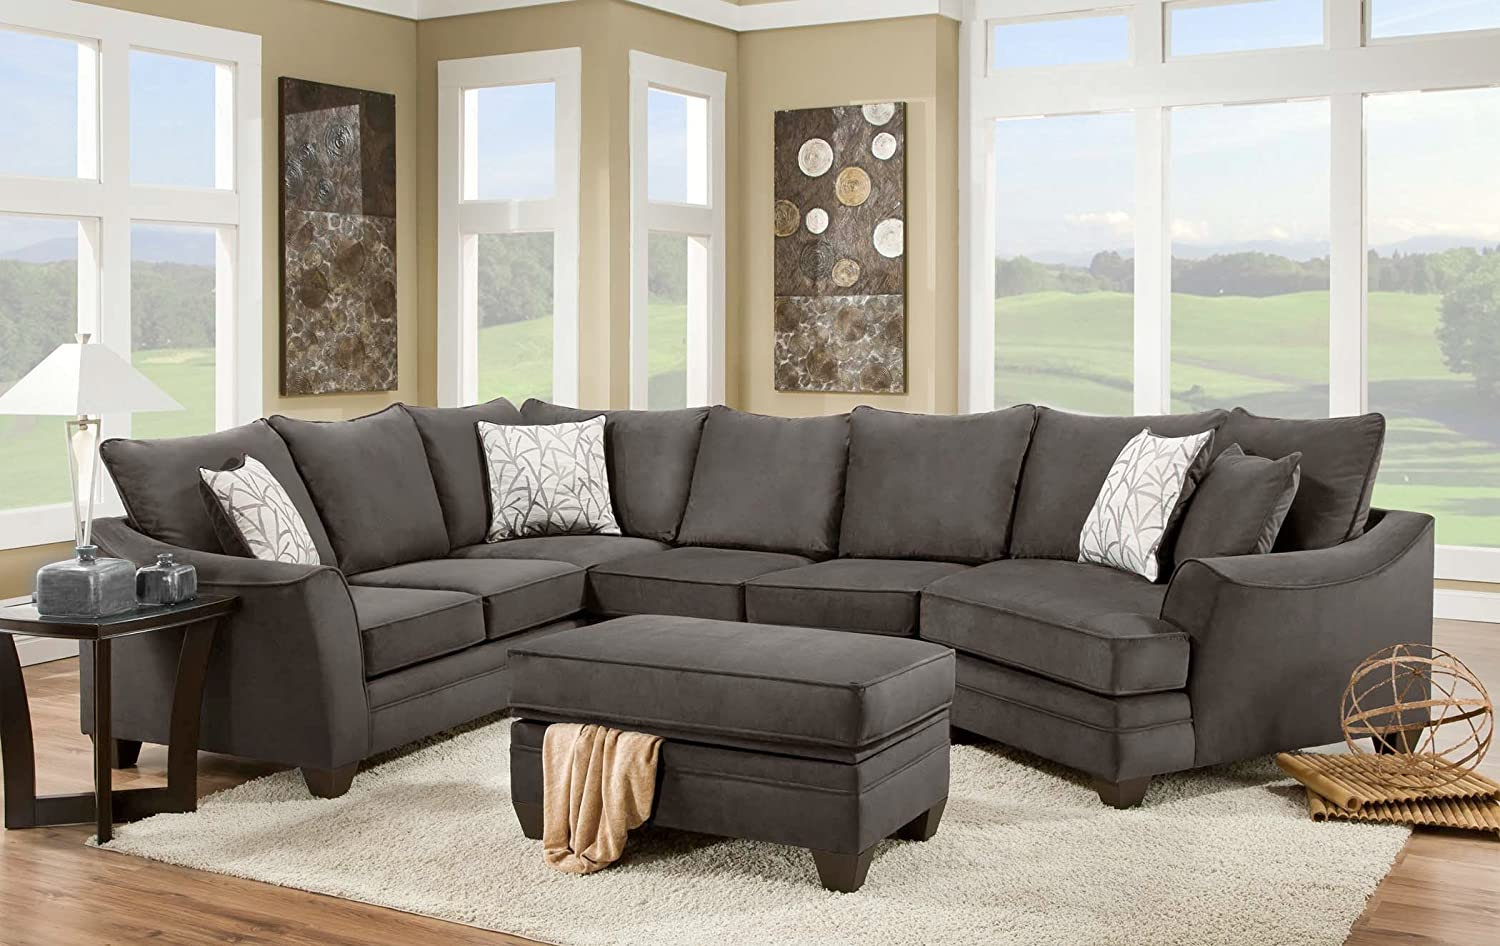 Chelsea Home Furniture Cupertino 3-Piece Sectional - Flannel Seal